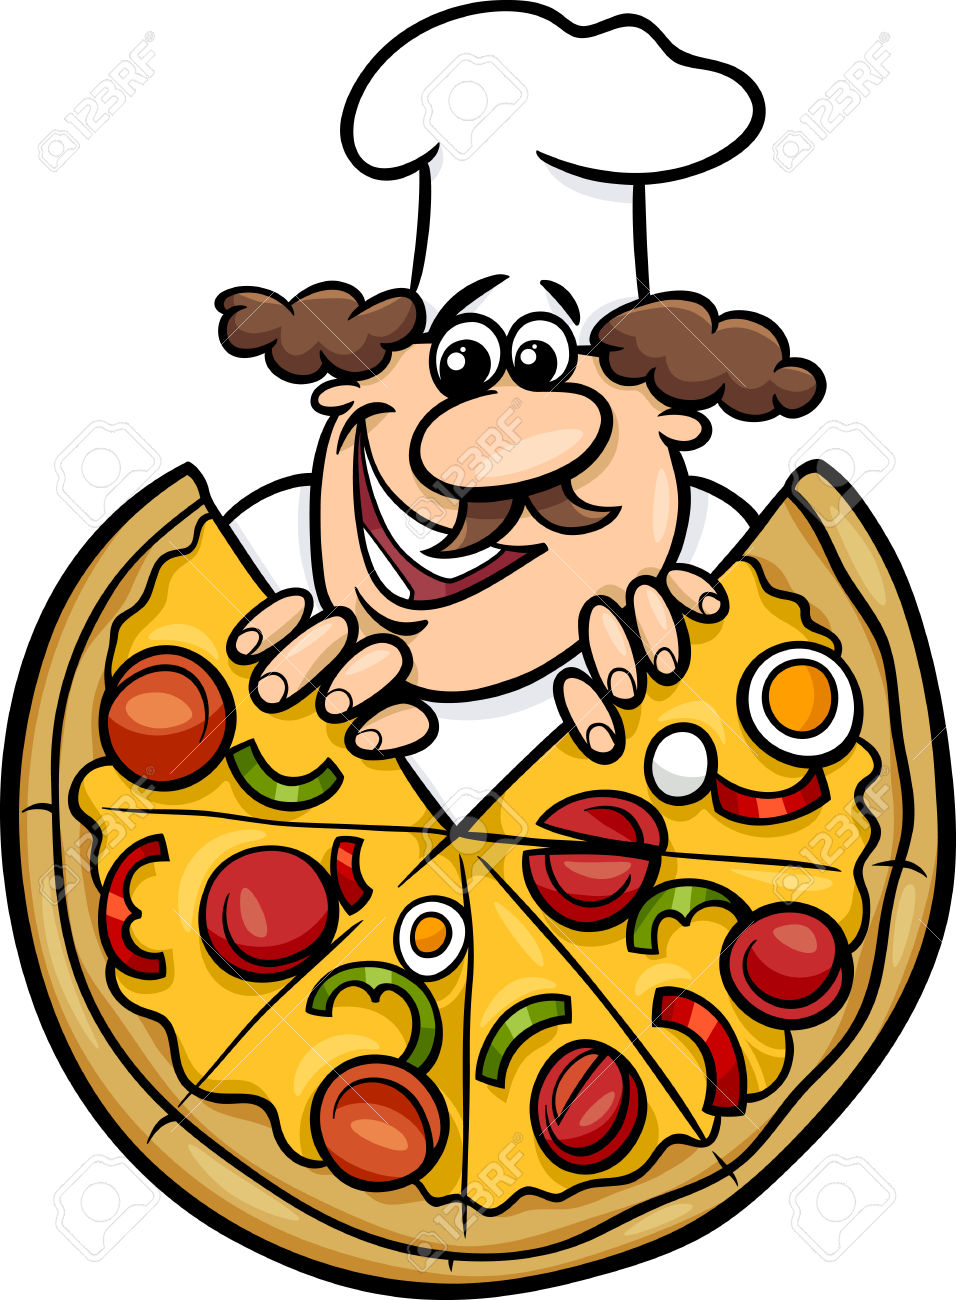 956x1300 Pizza Clipart, Suggestions For Pizza Clipart, Download Pizza Clipart